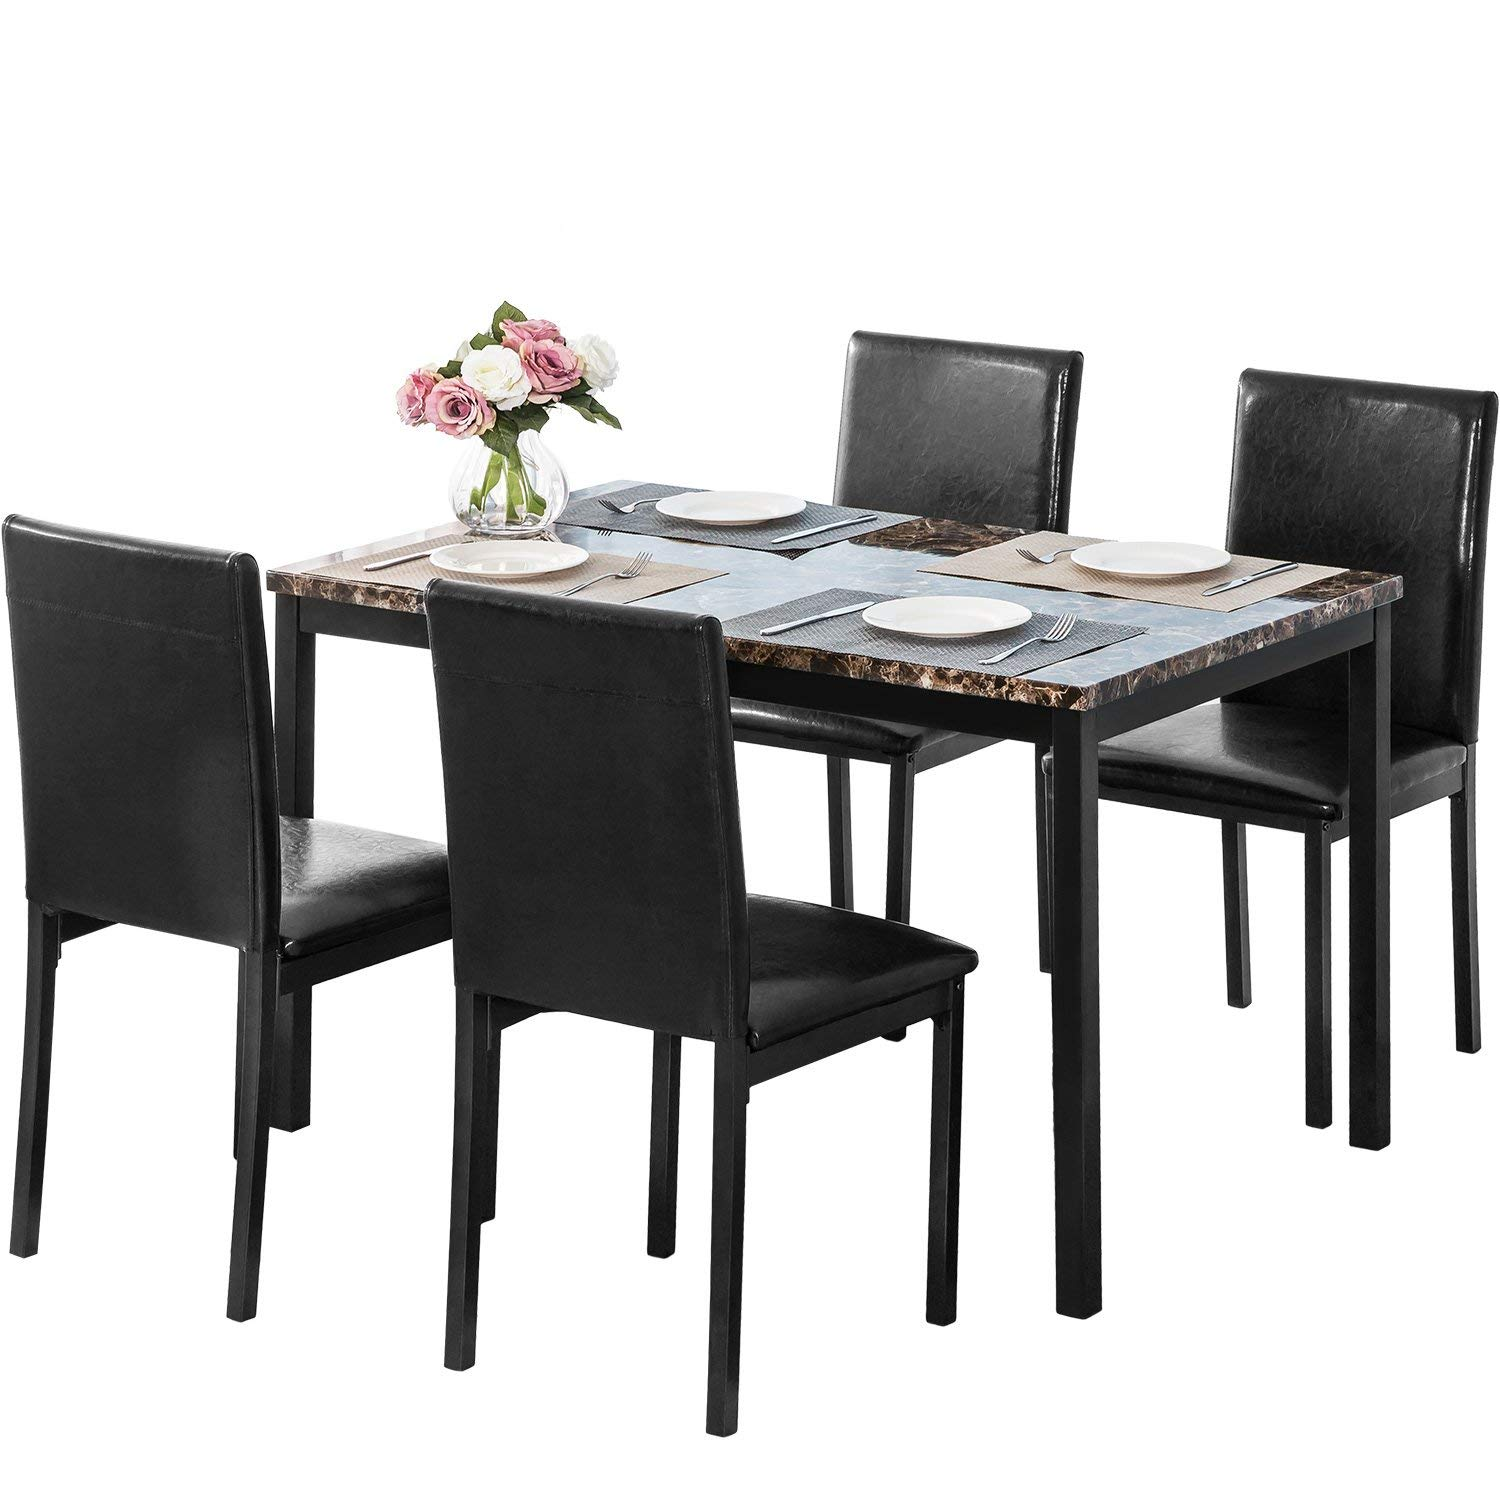 MOOSENG 5 Pieces Dining Table Set Elegant Faux Marble Desk and 4 Upholstered PU Leather Chairs, Perfect for Bar, Kitchen, Breakfast Nook, Living Room Occasions, Black